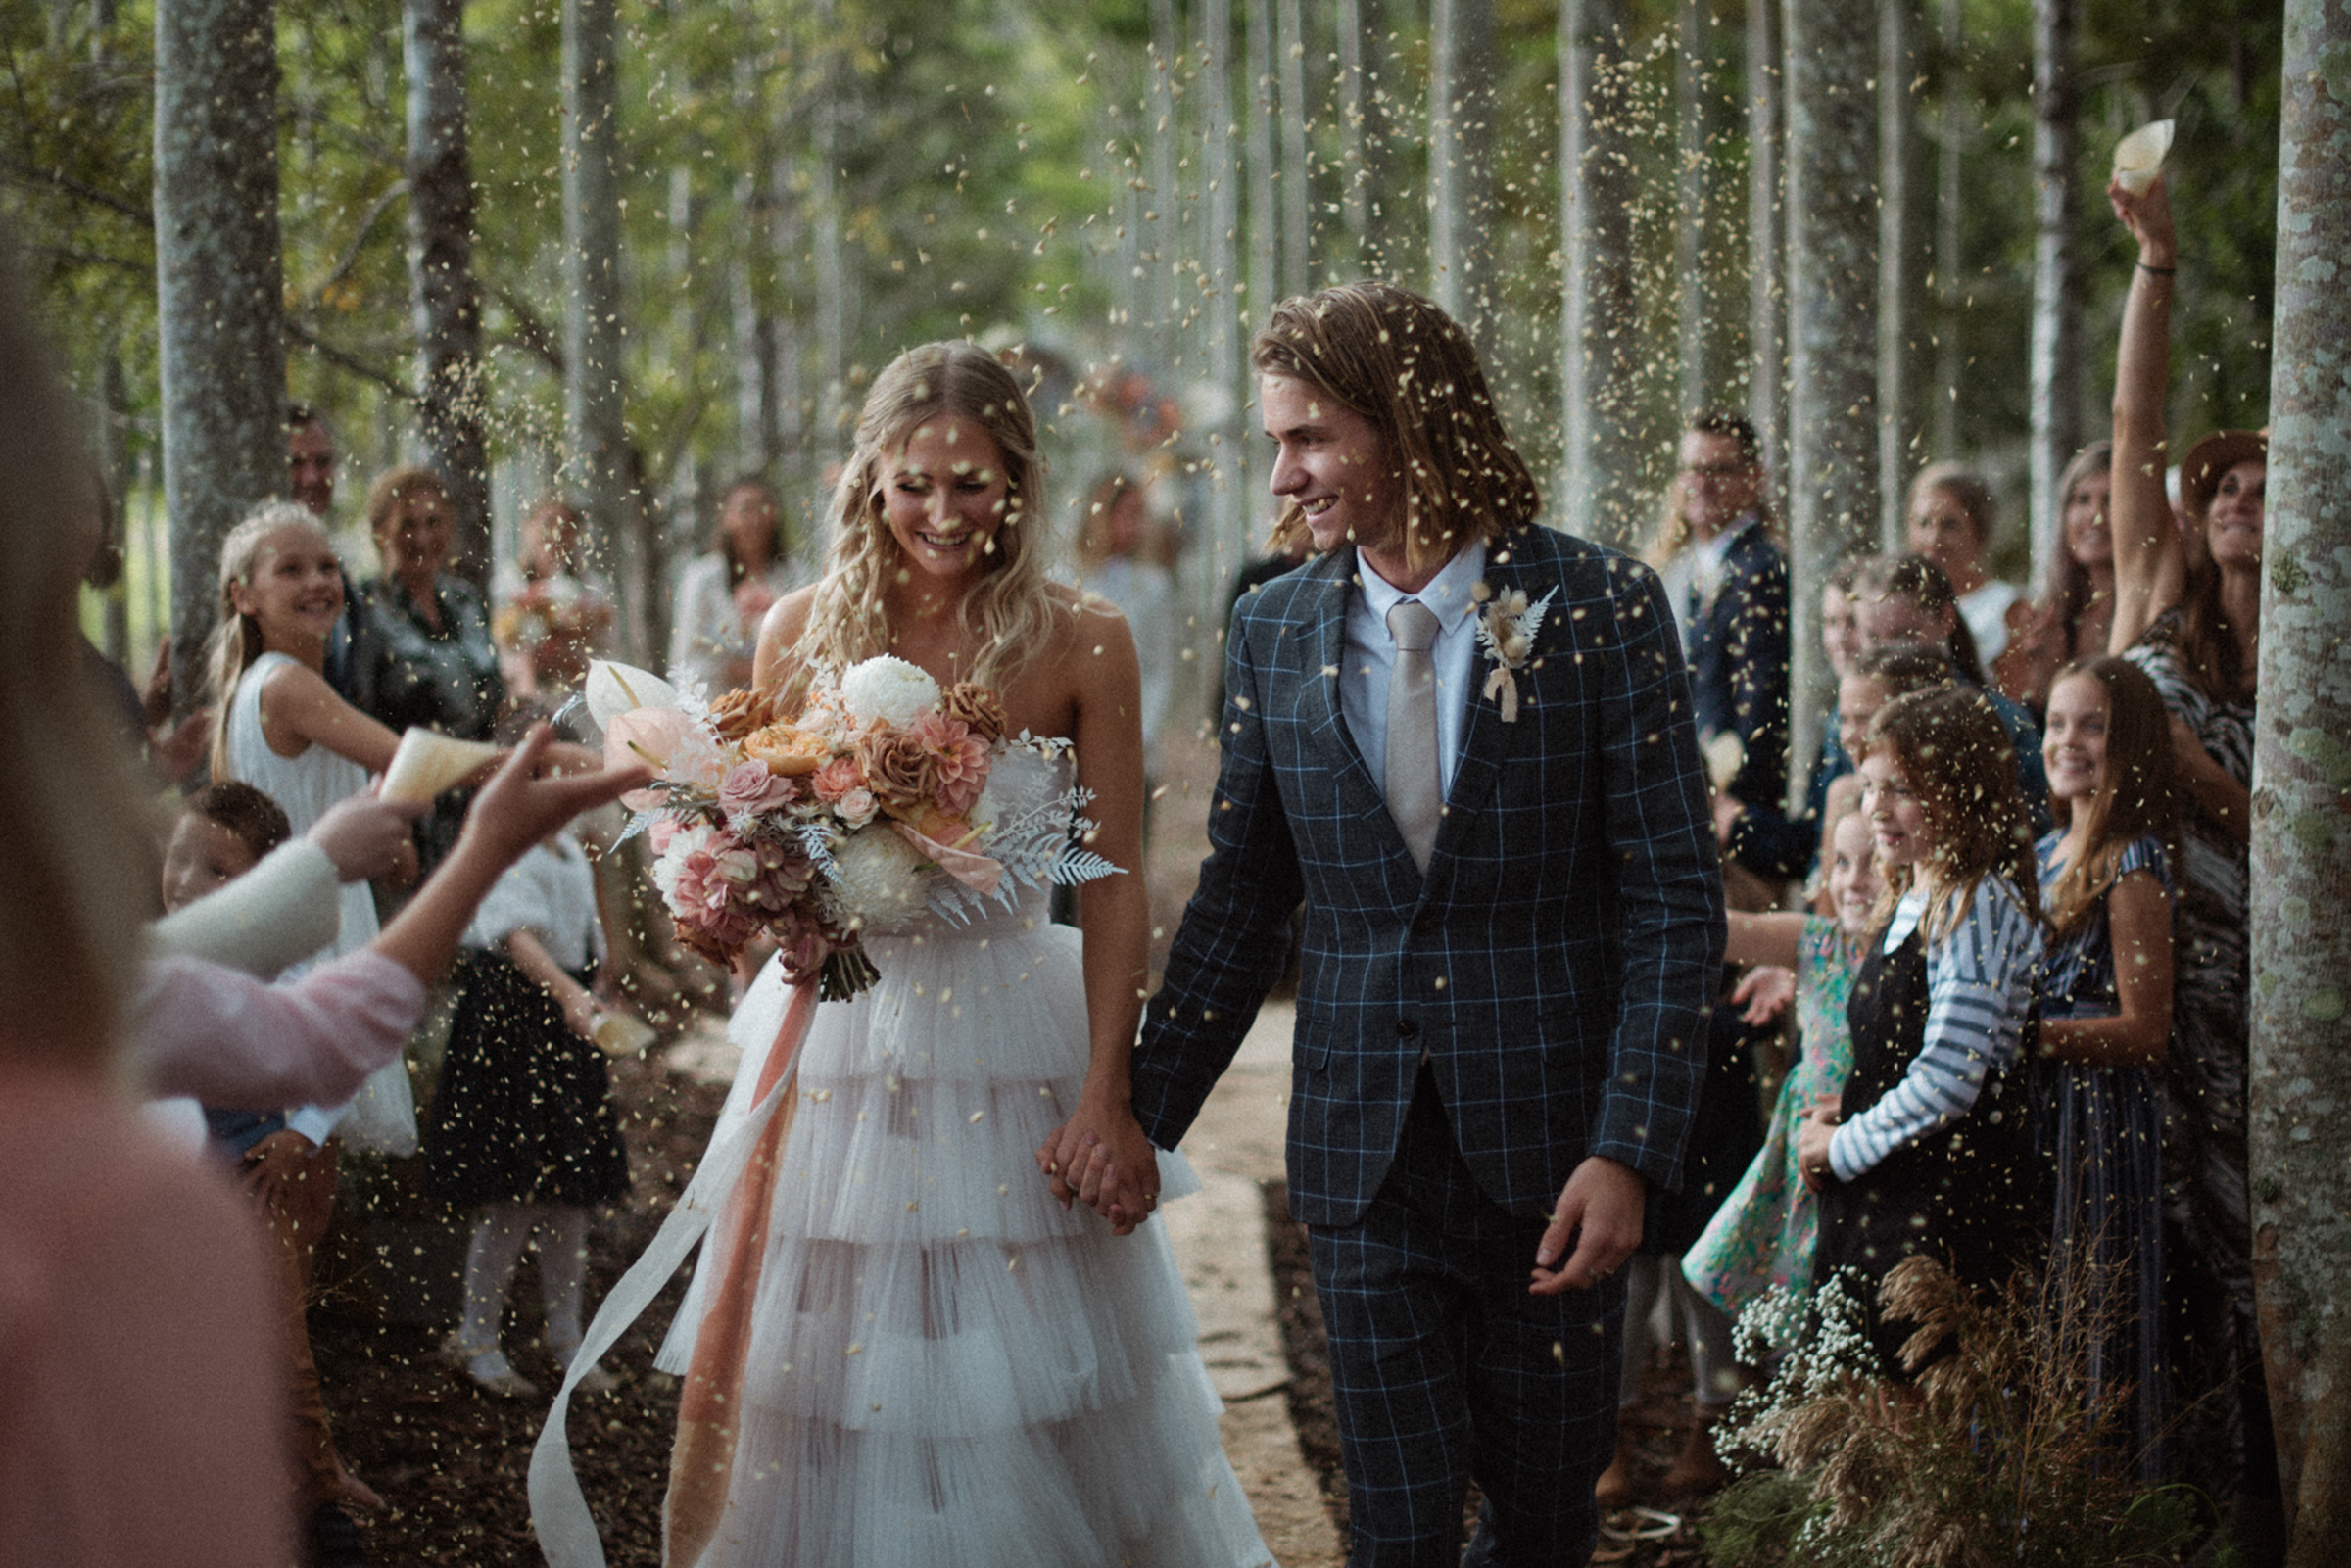 Couple exits  ceremony amid rice and trees - photo by Ben Sowry Photo